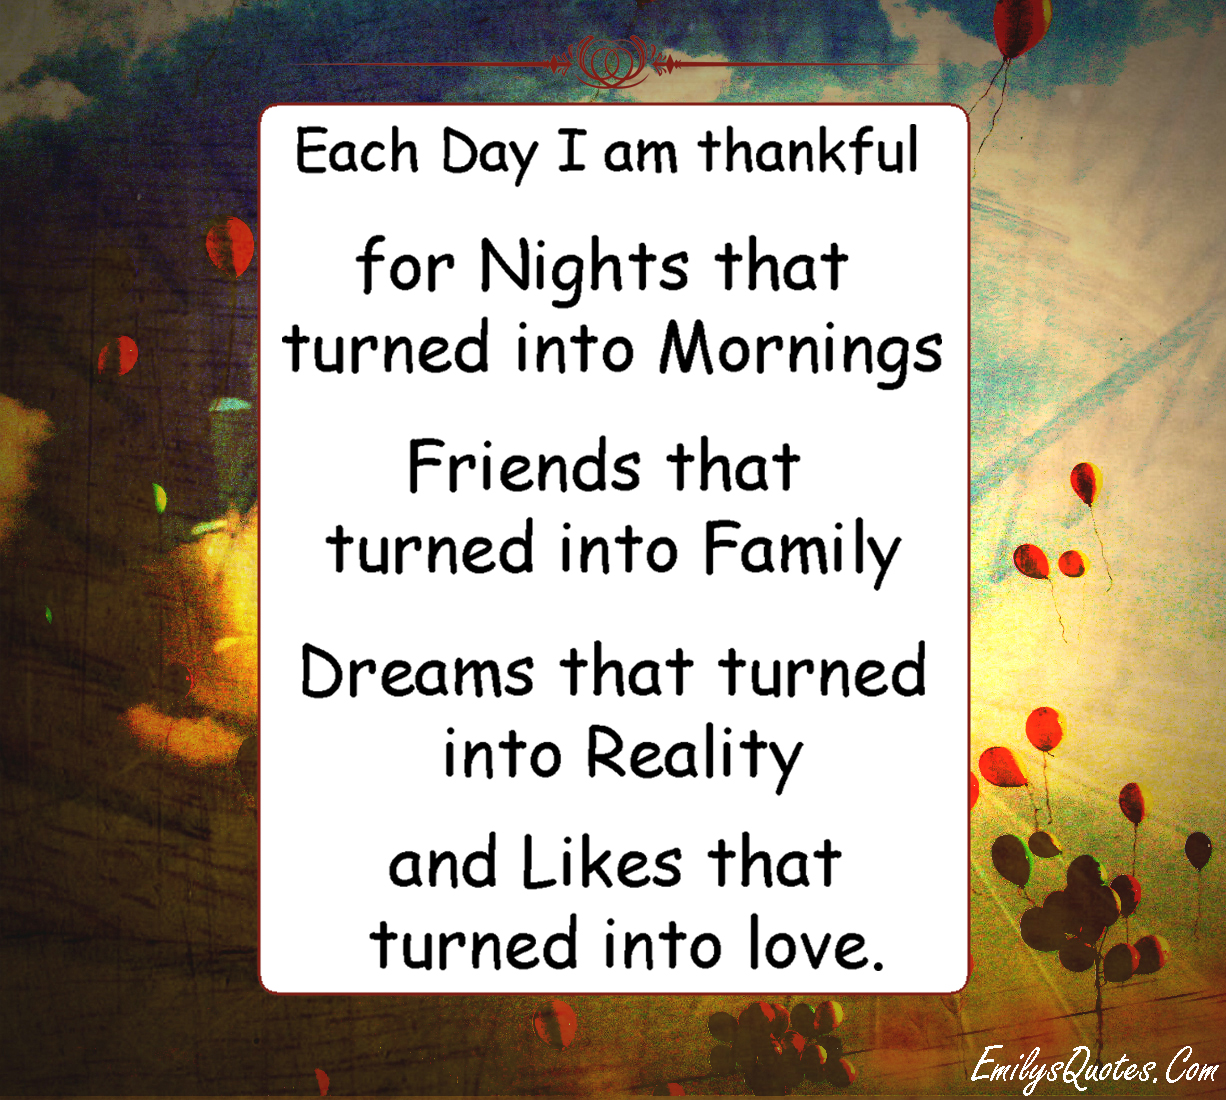 Each Day I am thankful for Nights that turned into Mornings ...